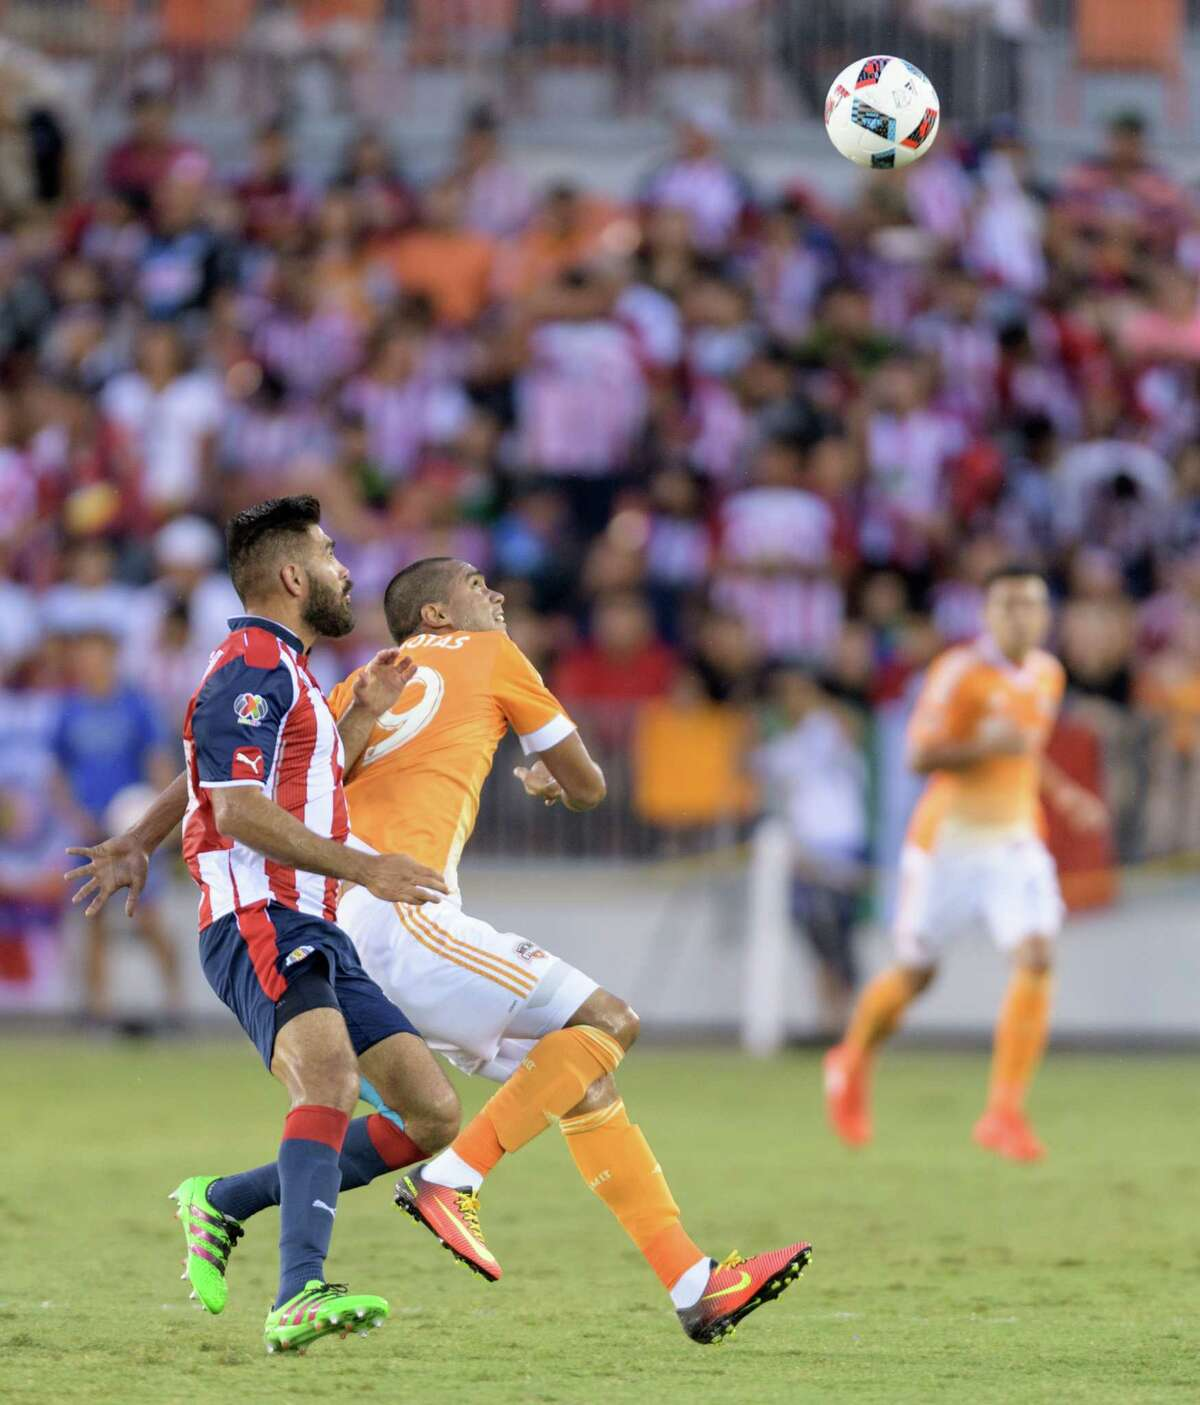 Mauro Manotas (19) of the Houston Dynamo looks for a header in front of Nestor Caldgron (18) of C. D. Guadalajara in a friendly soccer match on Sunday, September 4, 2016 at BBVA Compass Stadium in Houston Texas.